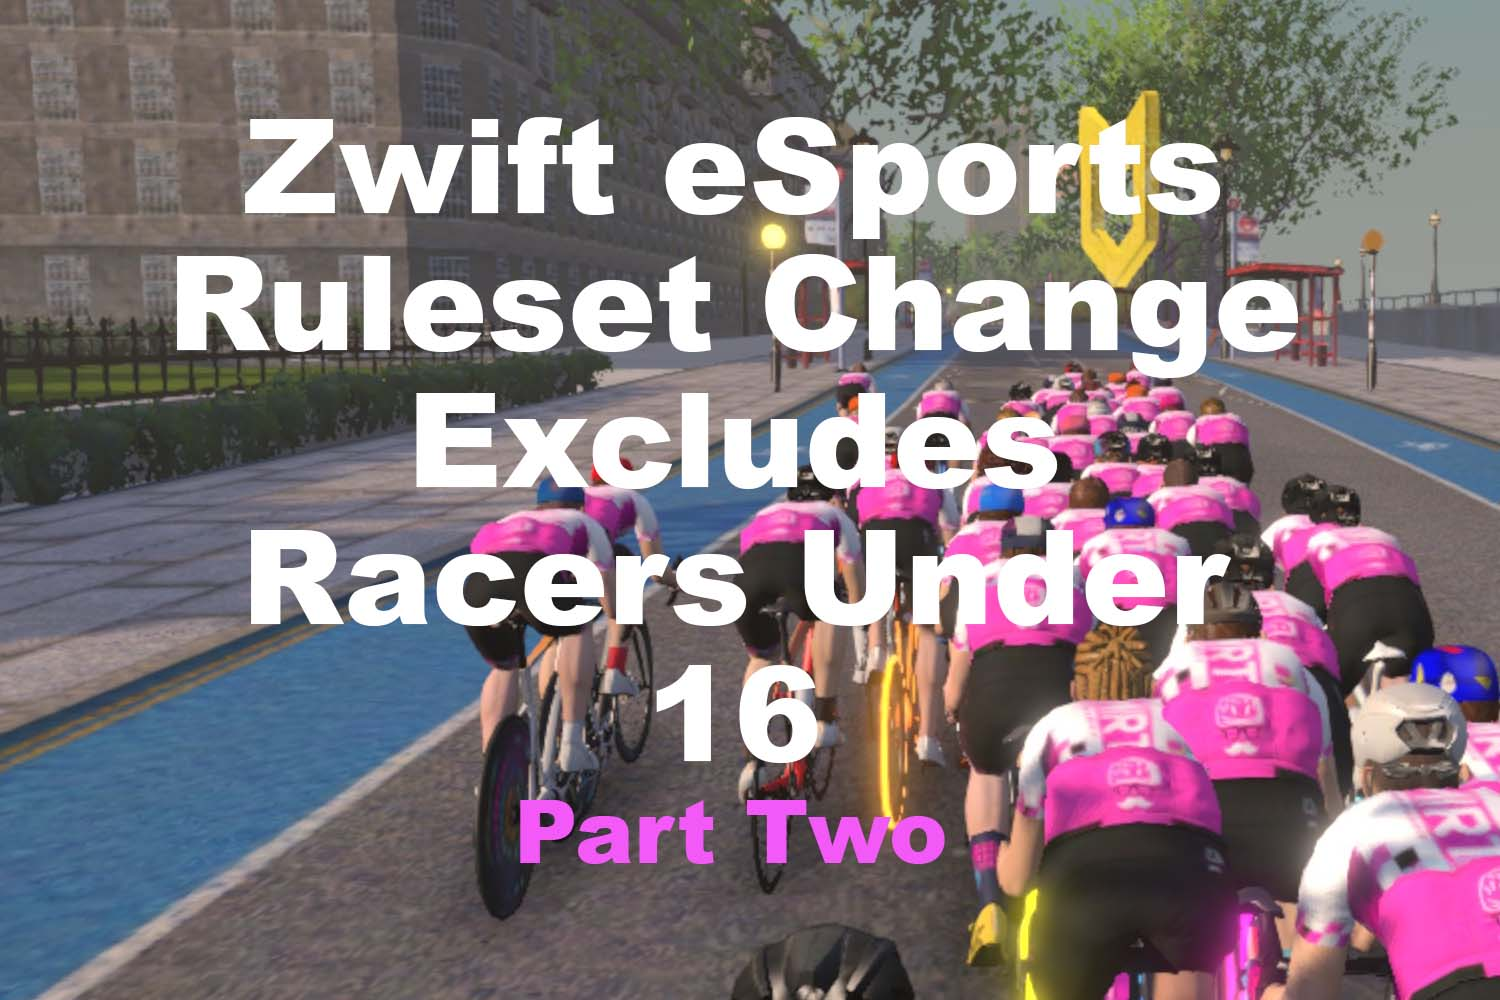 Part Two: Zwift eSports Ruleset Excludes Racers Under 16